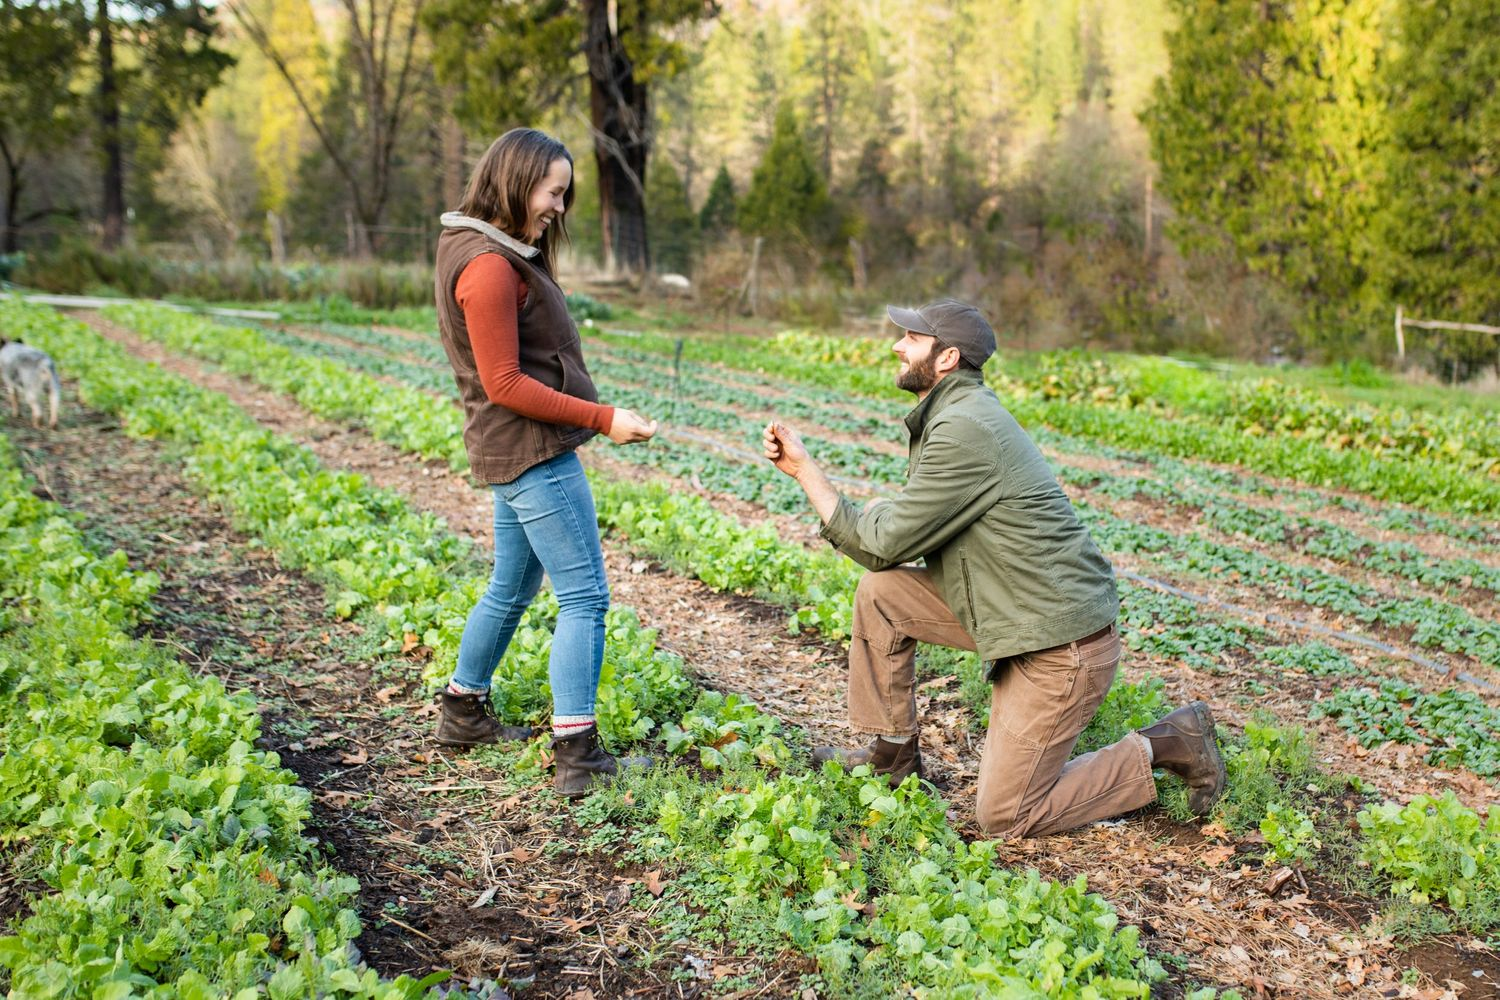 A groom on one knee offering a ring to his beloved while they're in a green, growing field in Nevada City, California